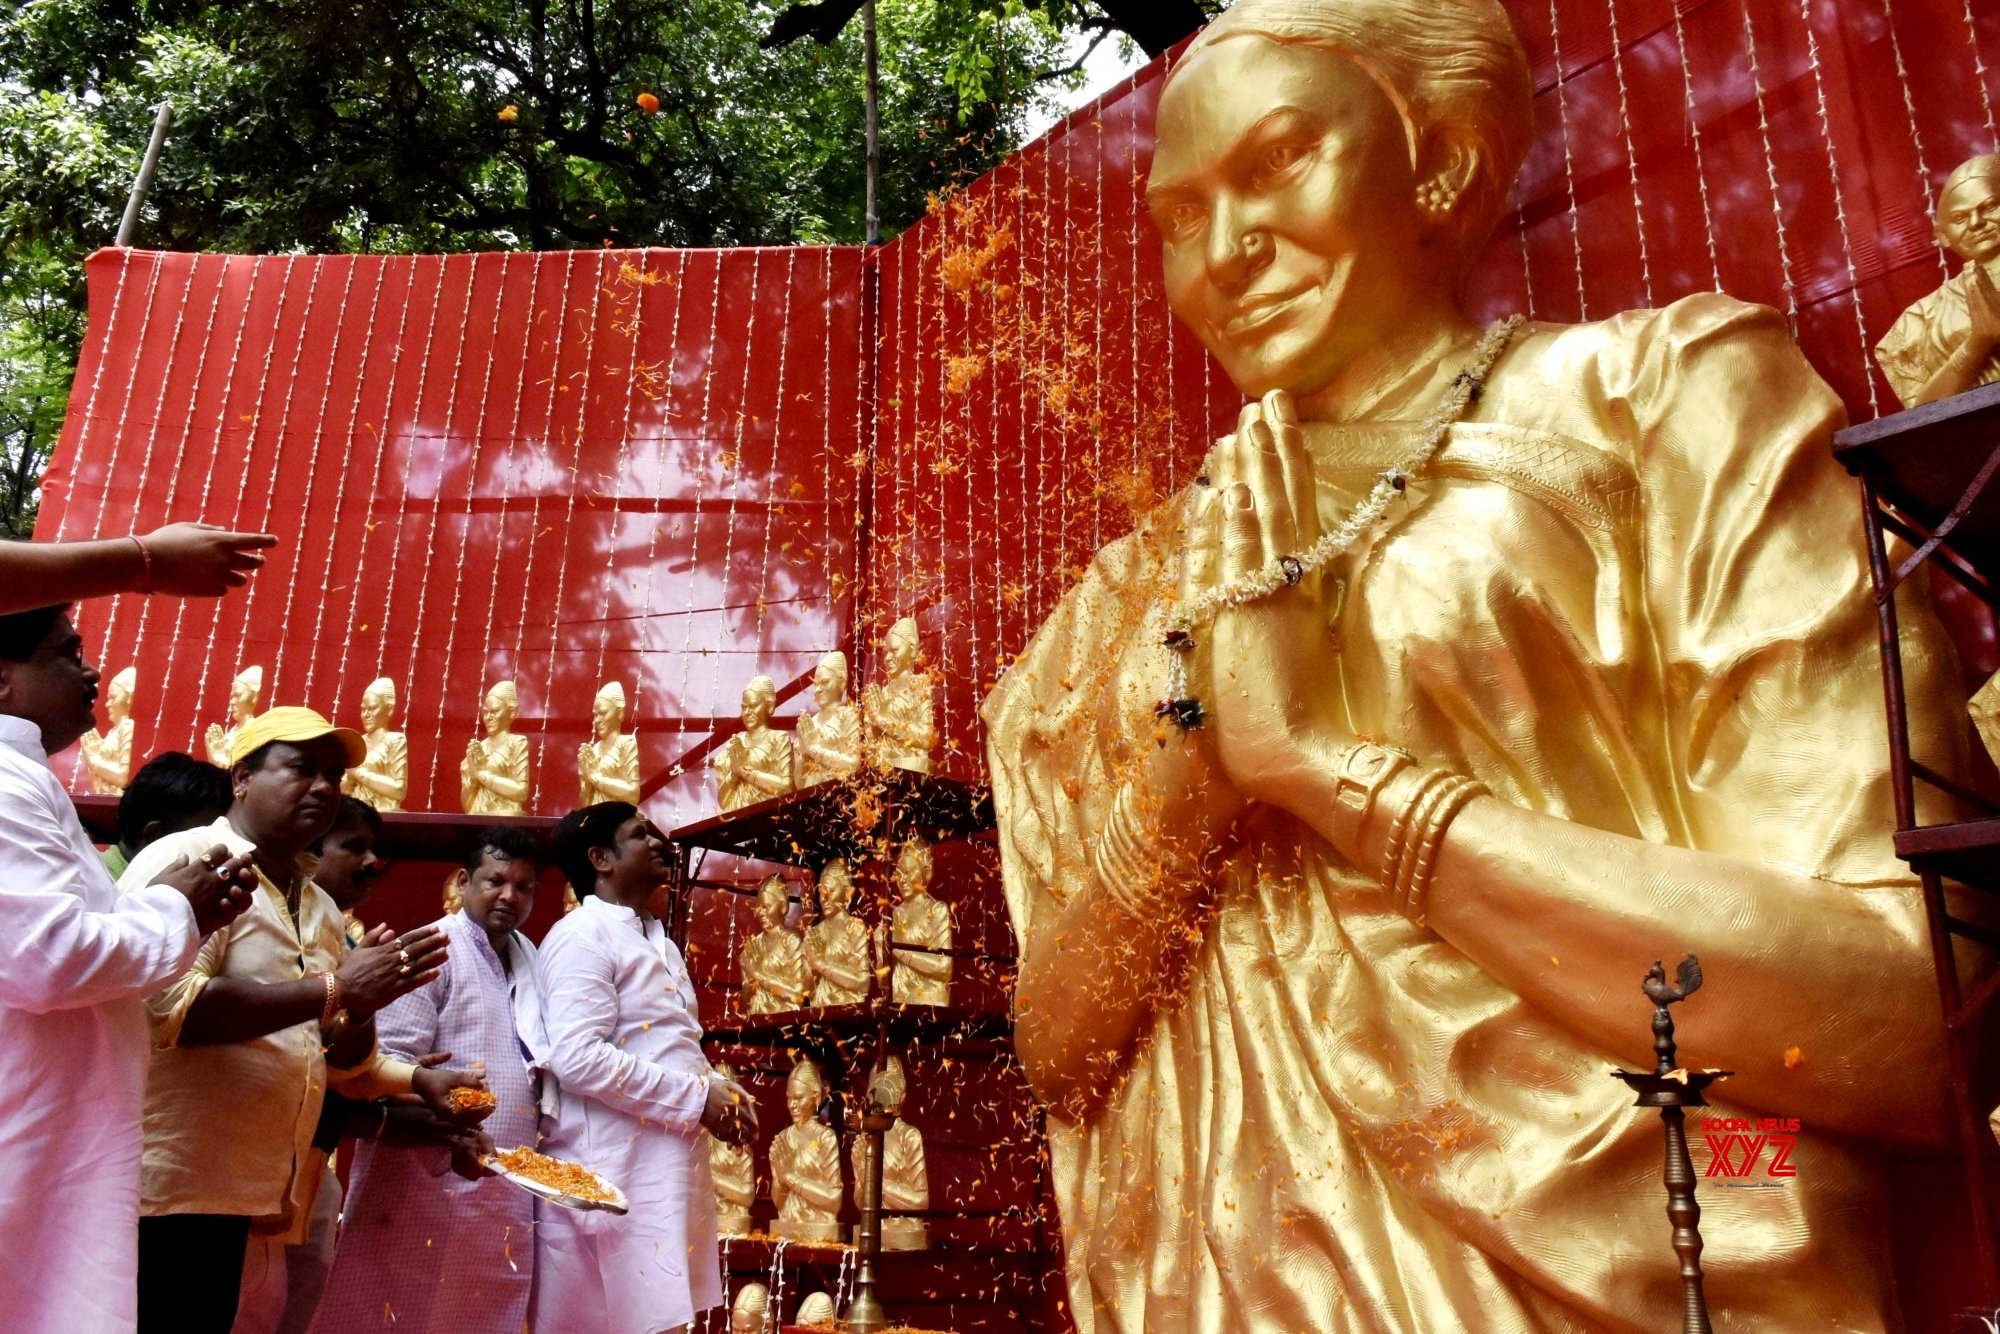 Patna: Mukesh Sahani is - Minister for Animal Husbandry & Fisheries pays homage to Phoolan Devi on her birth anniversary at his residence in Patna. #Gallery